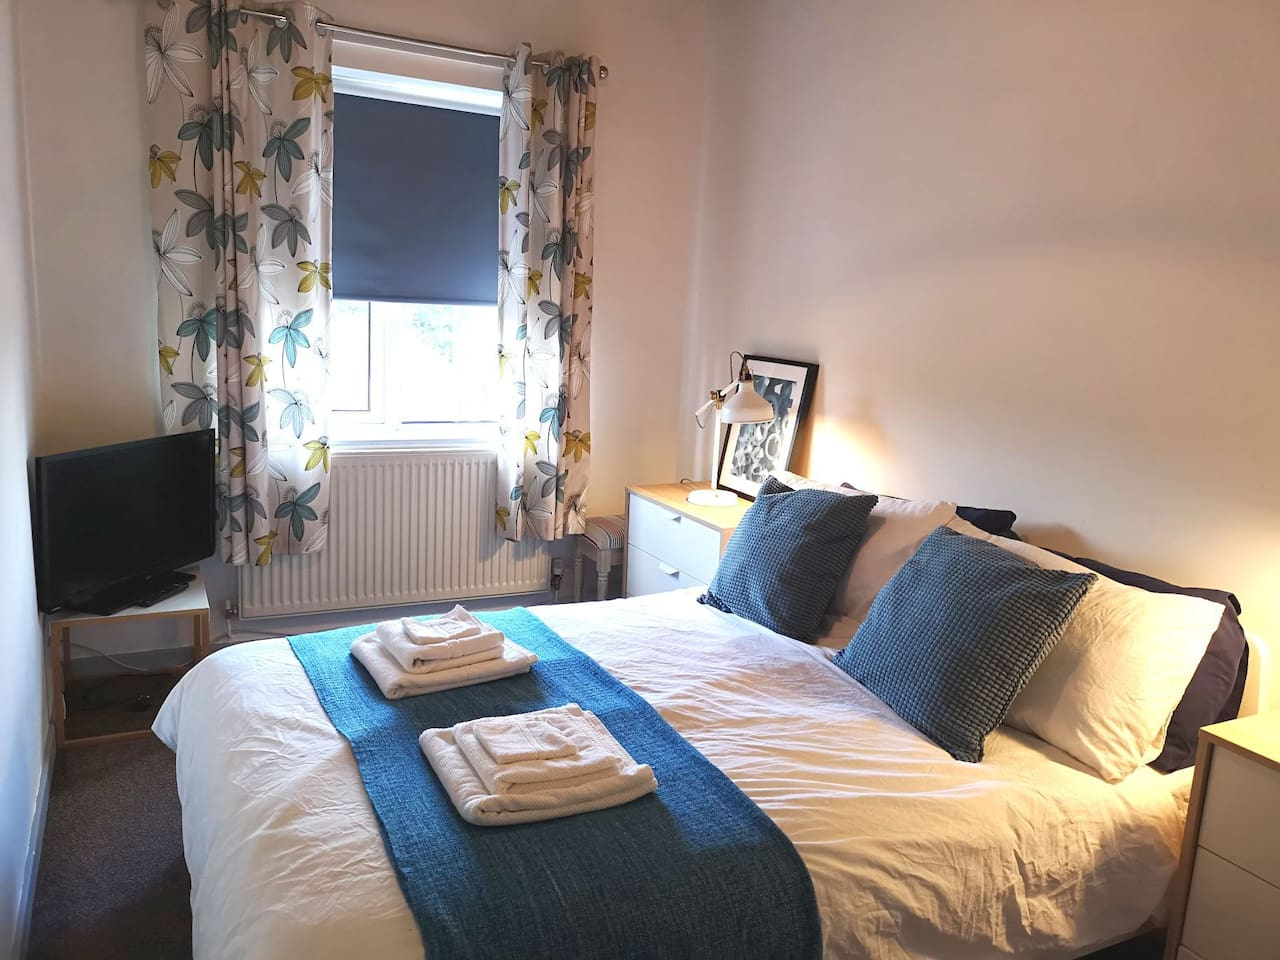 Comfortable double bed, towels, TV, plenty of pillows.